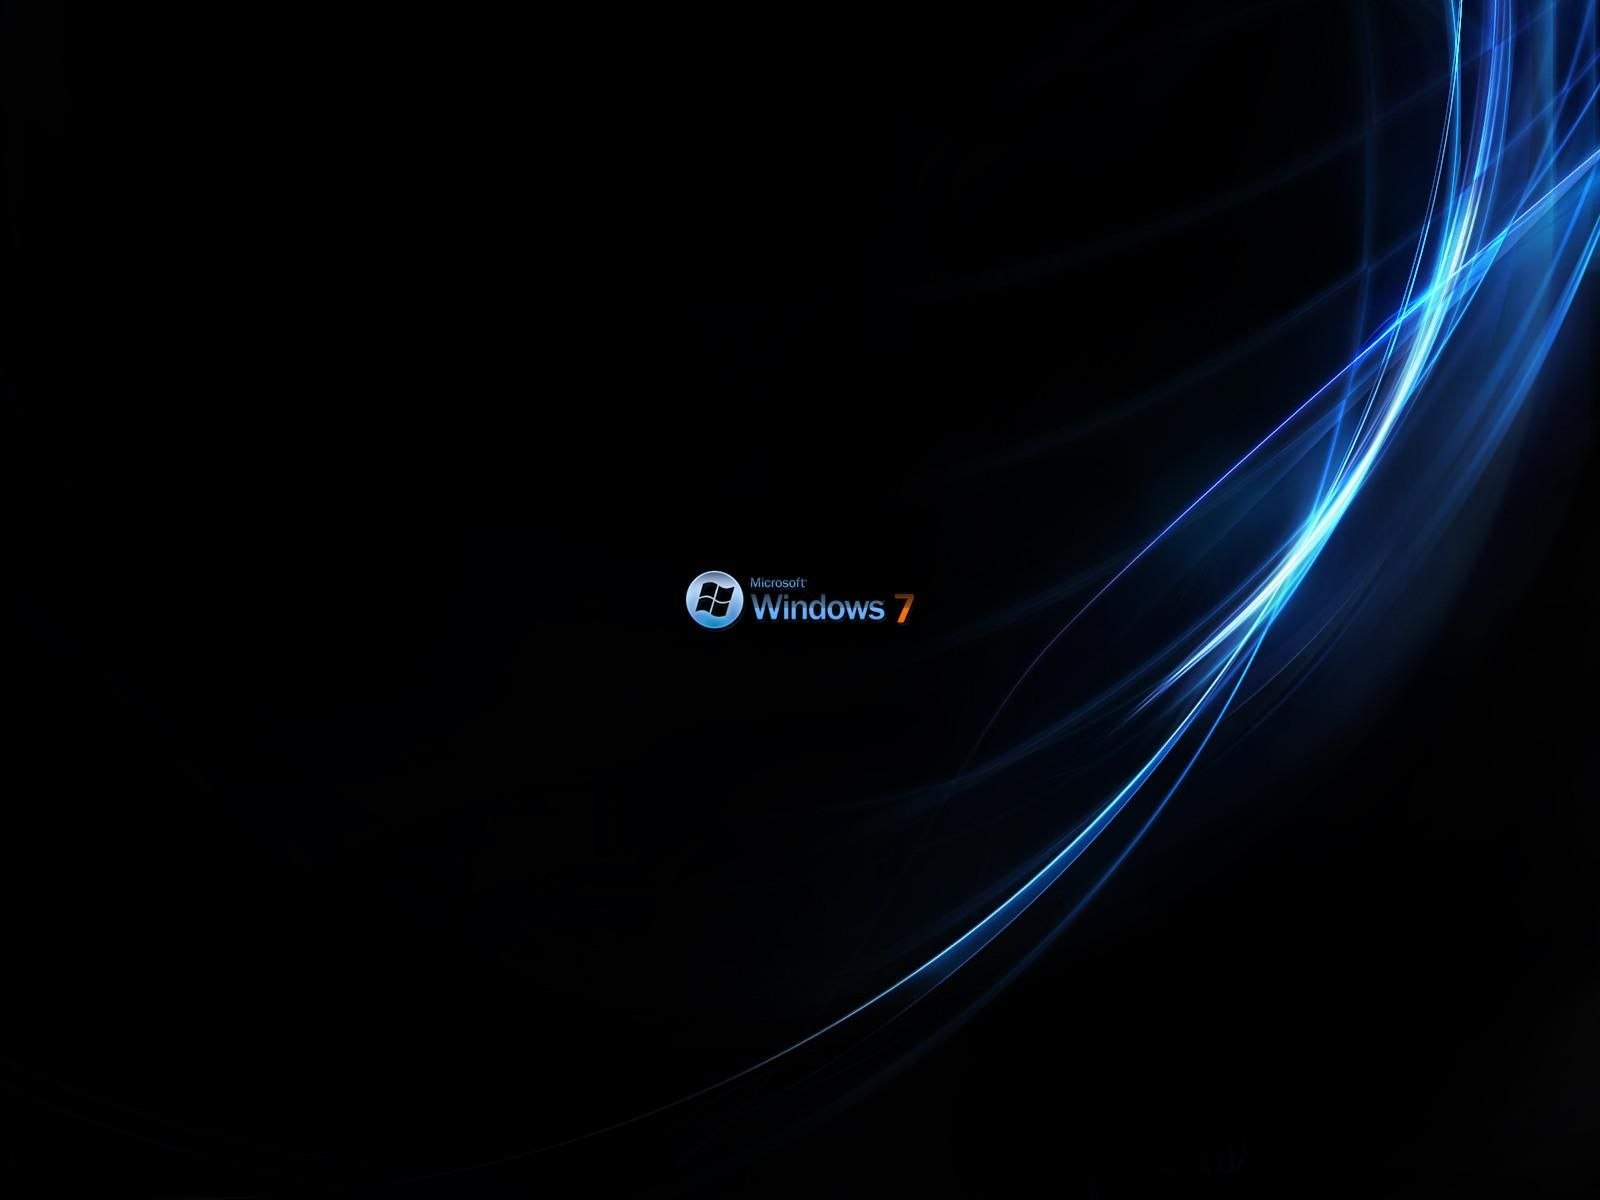 Papel De Parede Windows 7 Wallpaper Para Download No